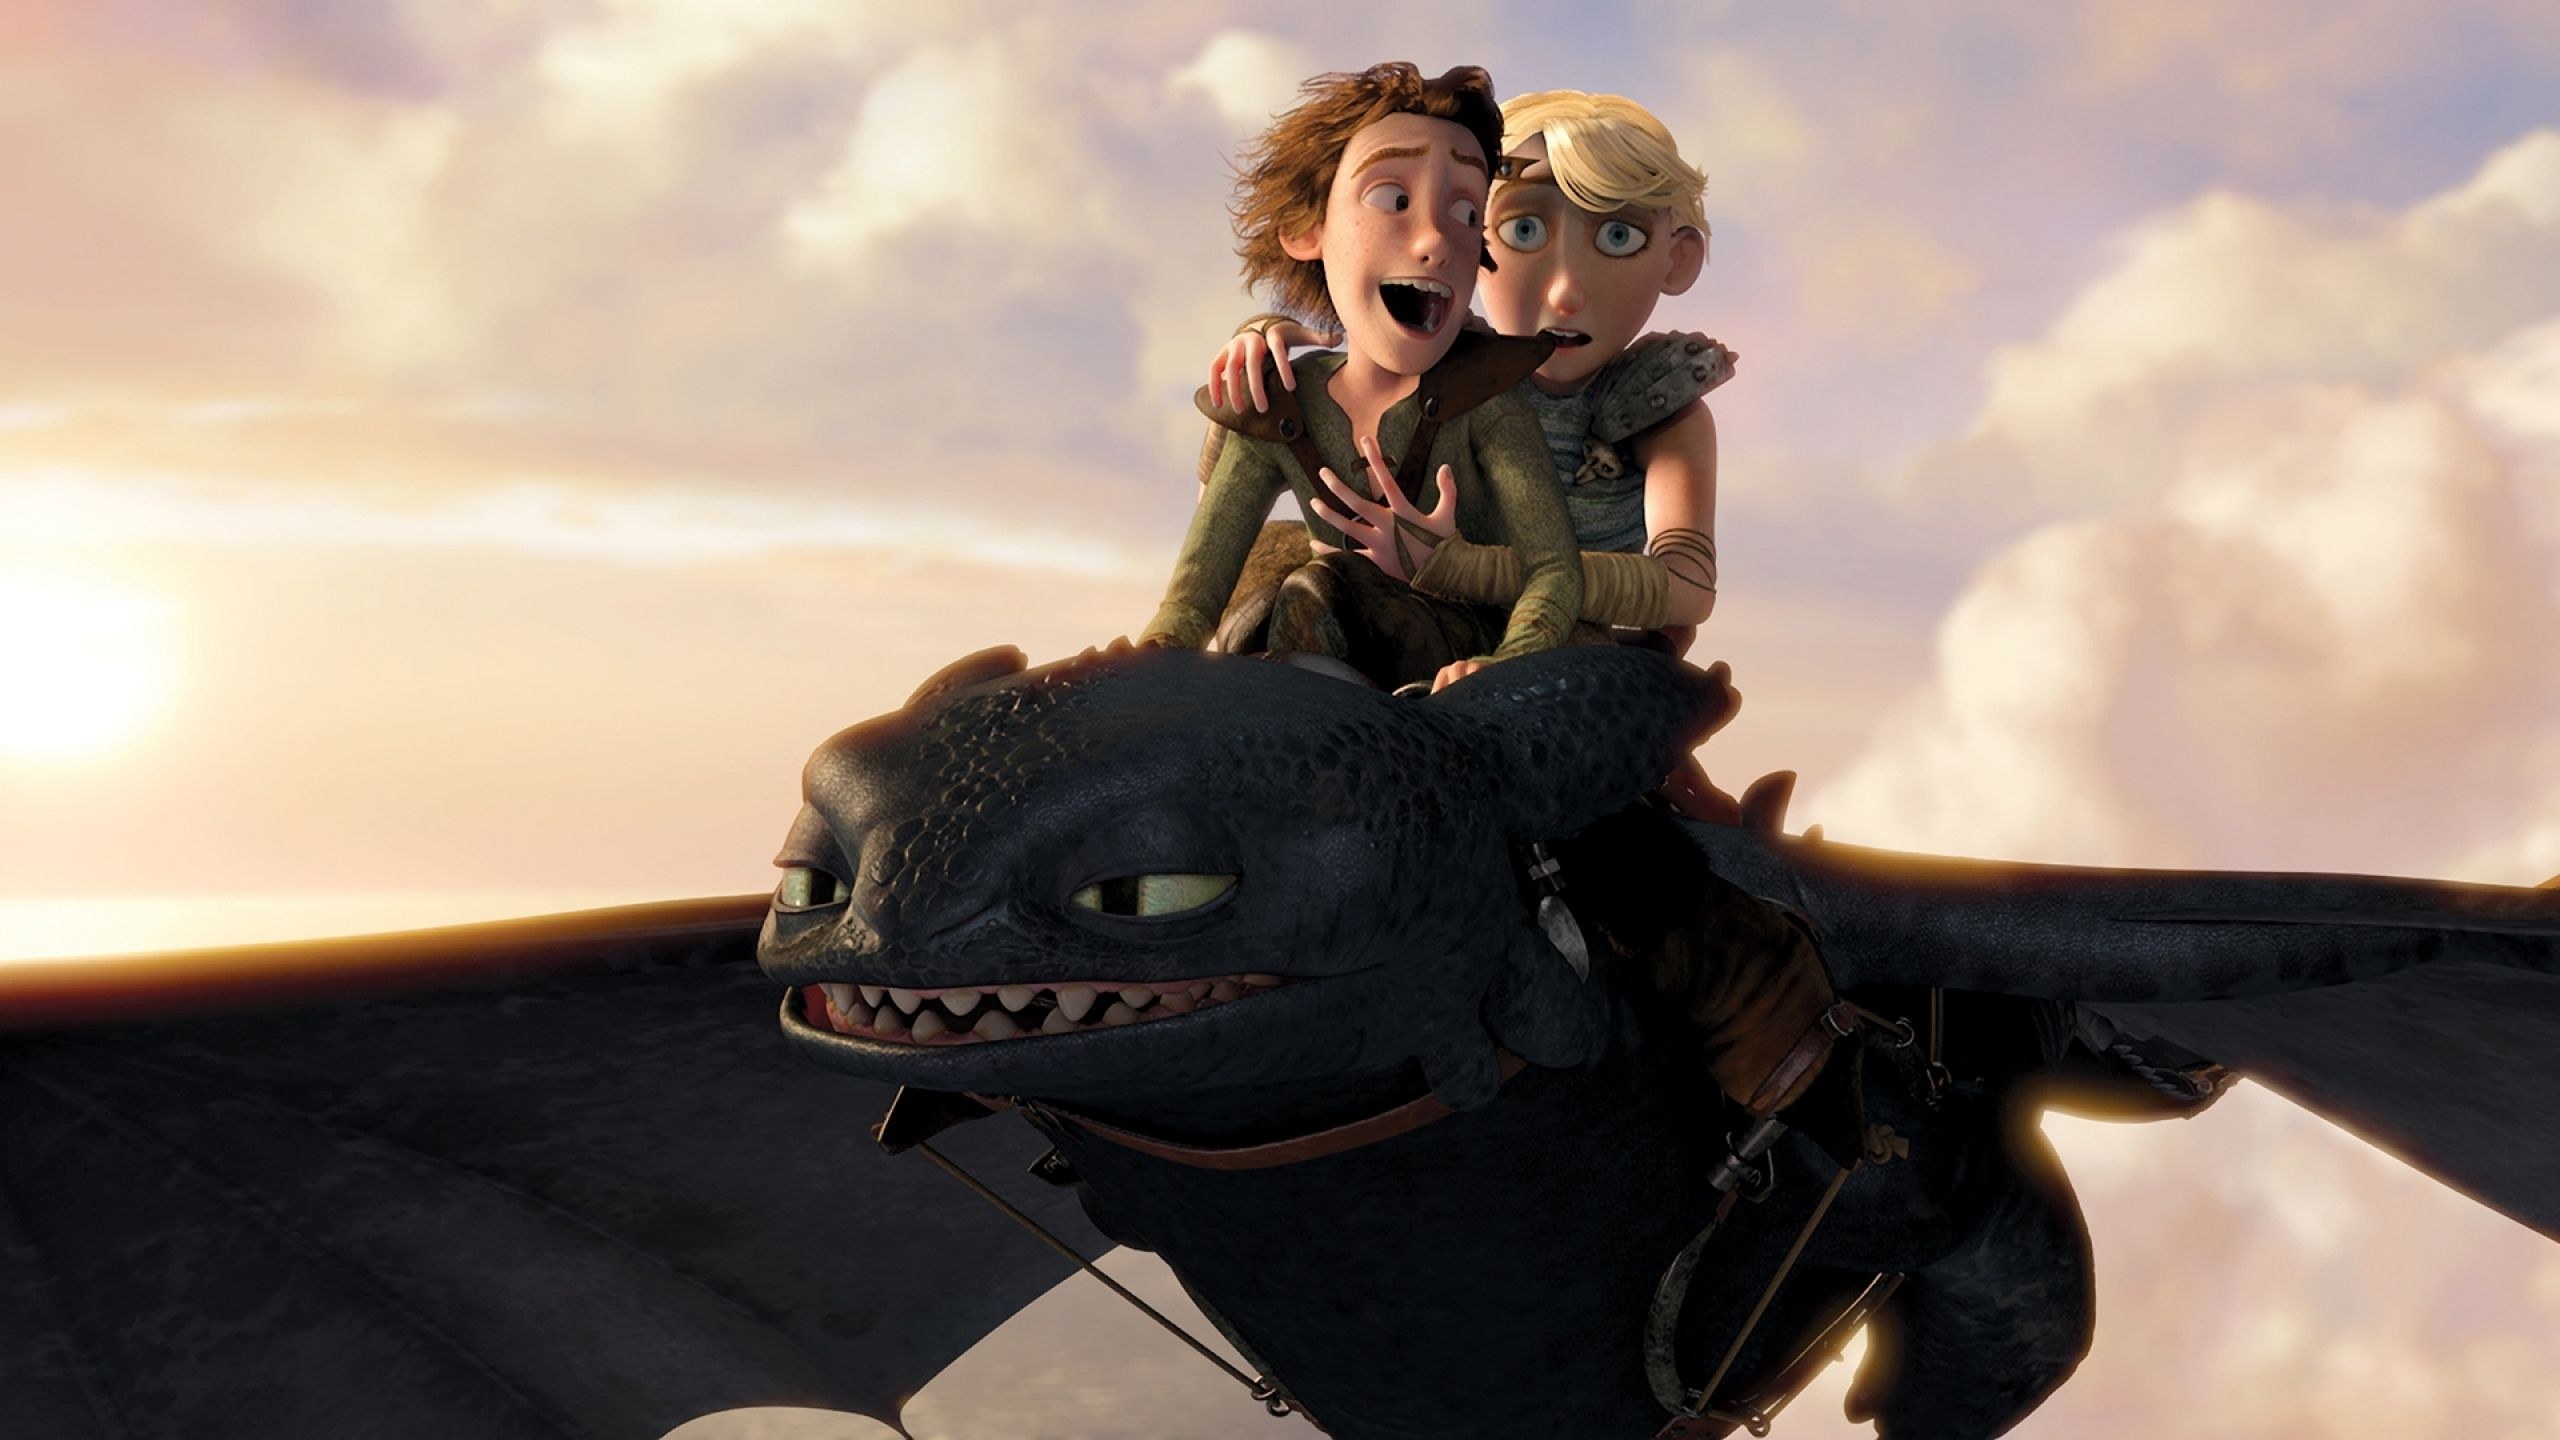 How To Train Your Dragon Movie Astrid Movies Toothless How To Train Your Dragon Hiccup Astr How Train Your Dragon How To Train Your Dragon Hiccup And Astrid